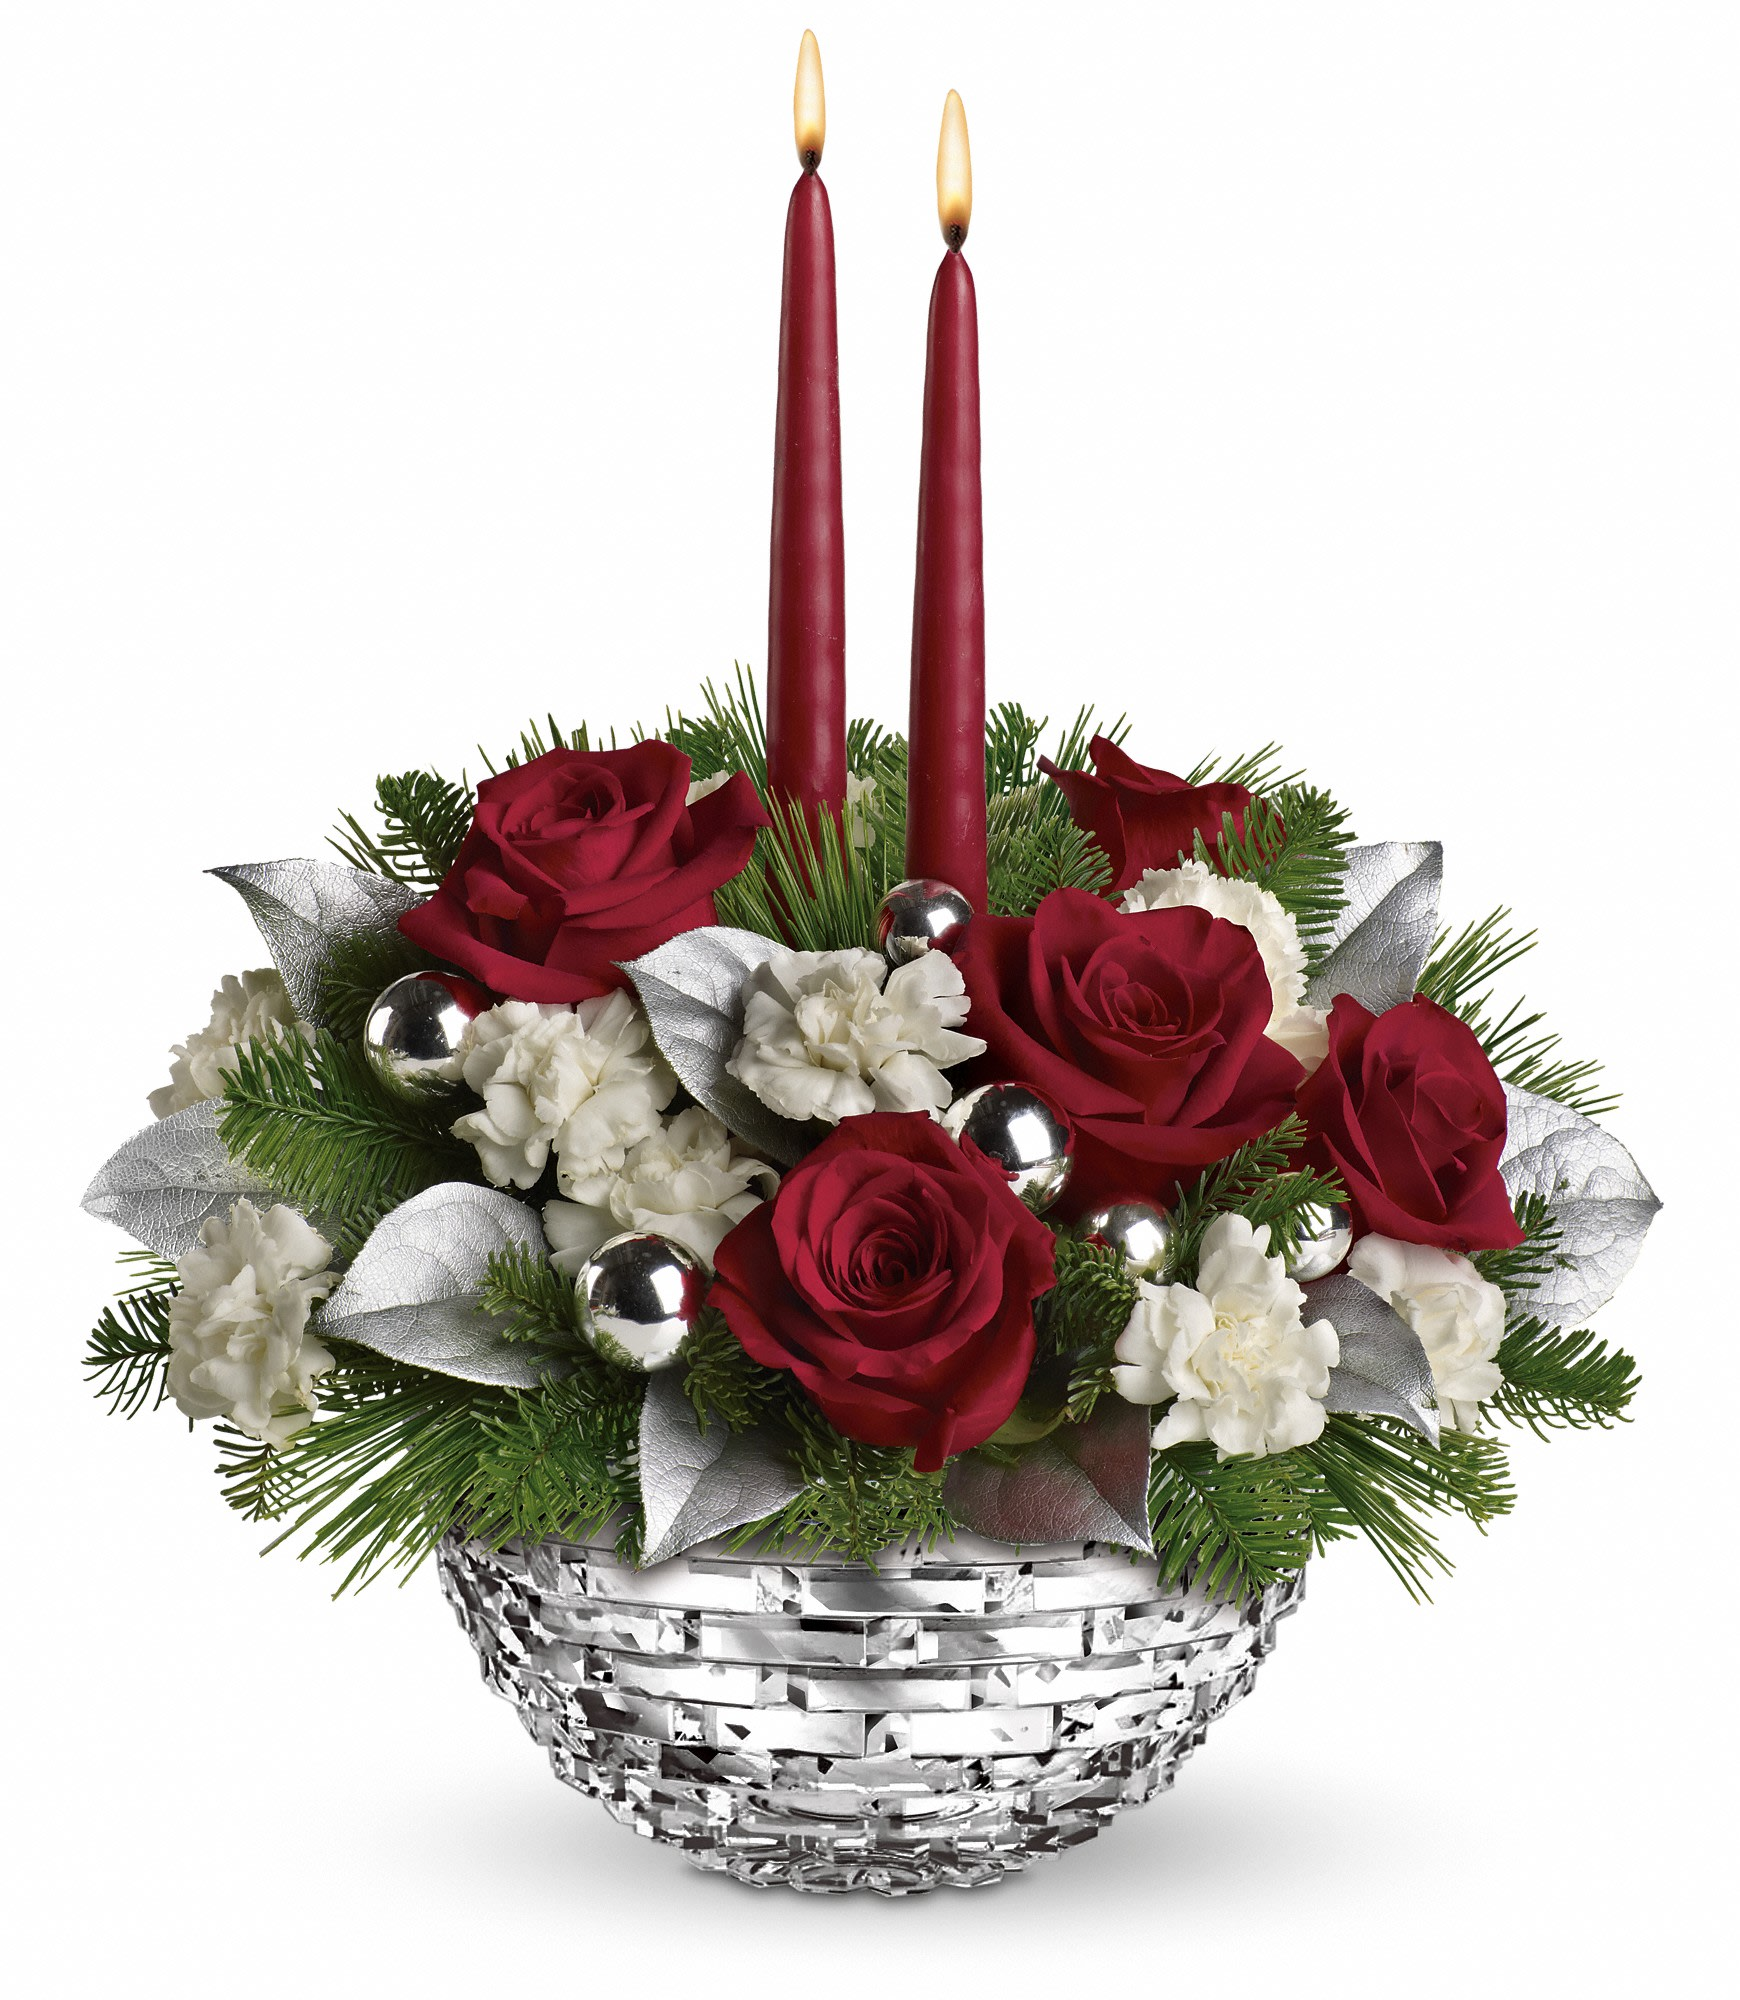 Teleflora Christmas 2020 Teleflora's Sparkle of Christmas Centerpiece in San Jacinto, CA